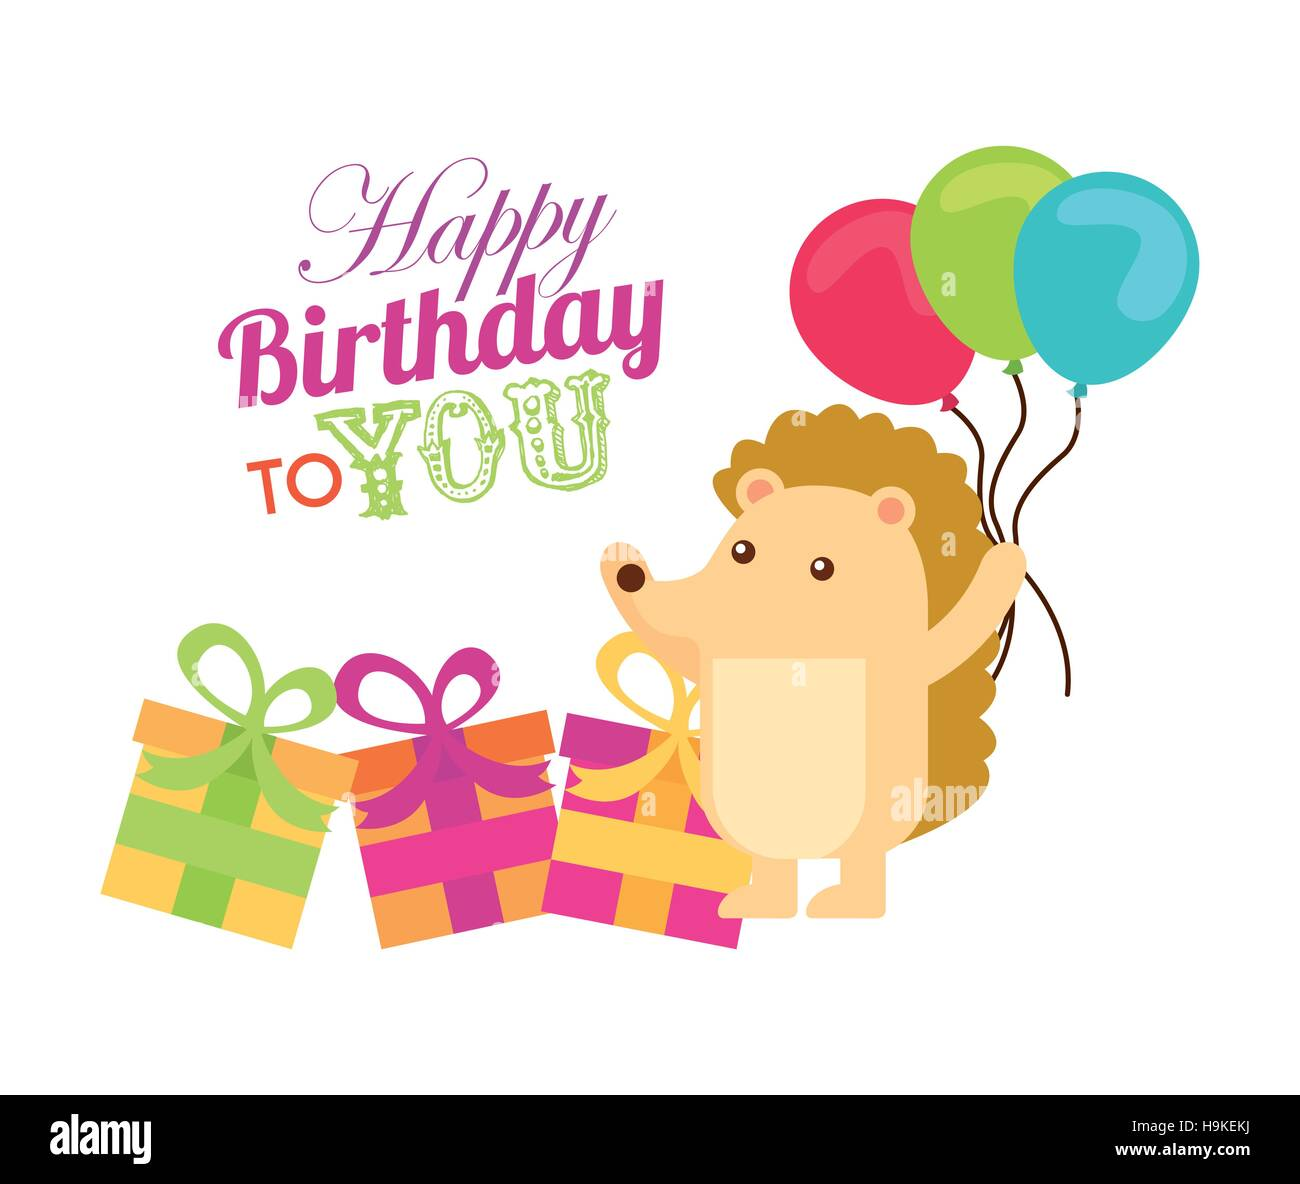 happy birthday card with cute hedgehog holding balloons and gift boxes over white background. colorful design. vector - Stock Image